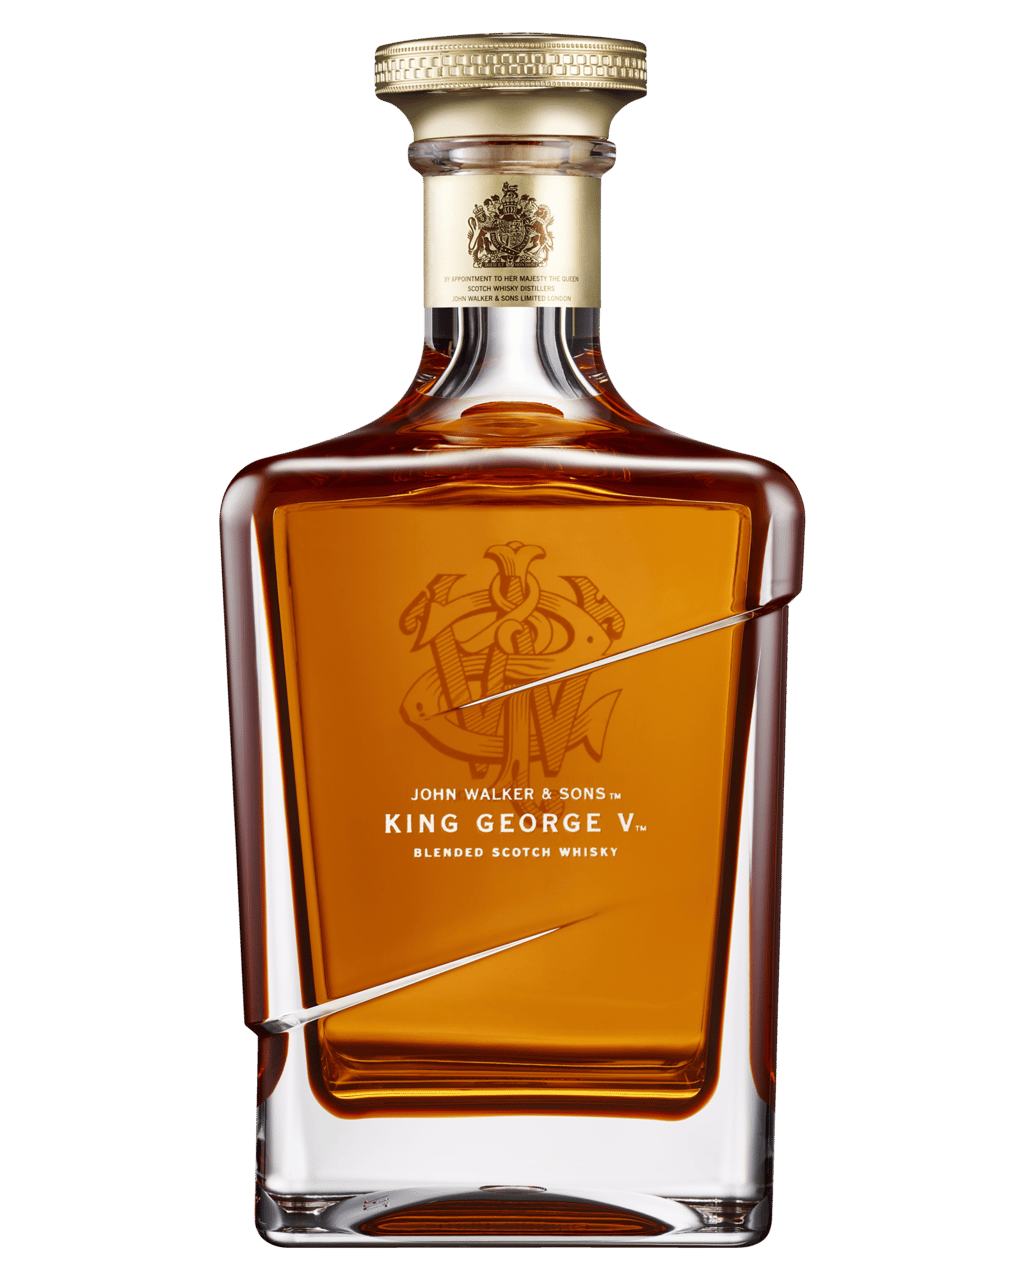 Buy Johnnie Walker King George V Scotch Whisky 750mL | Dan